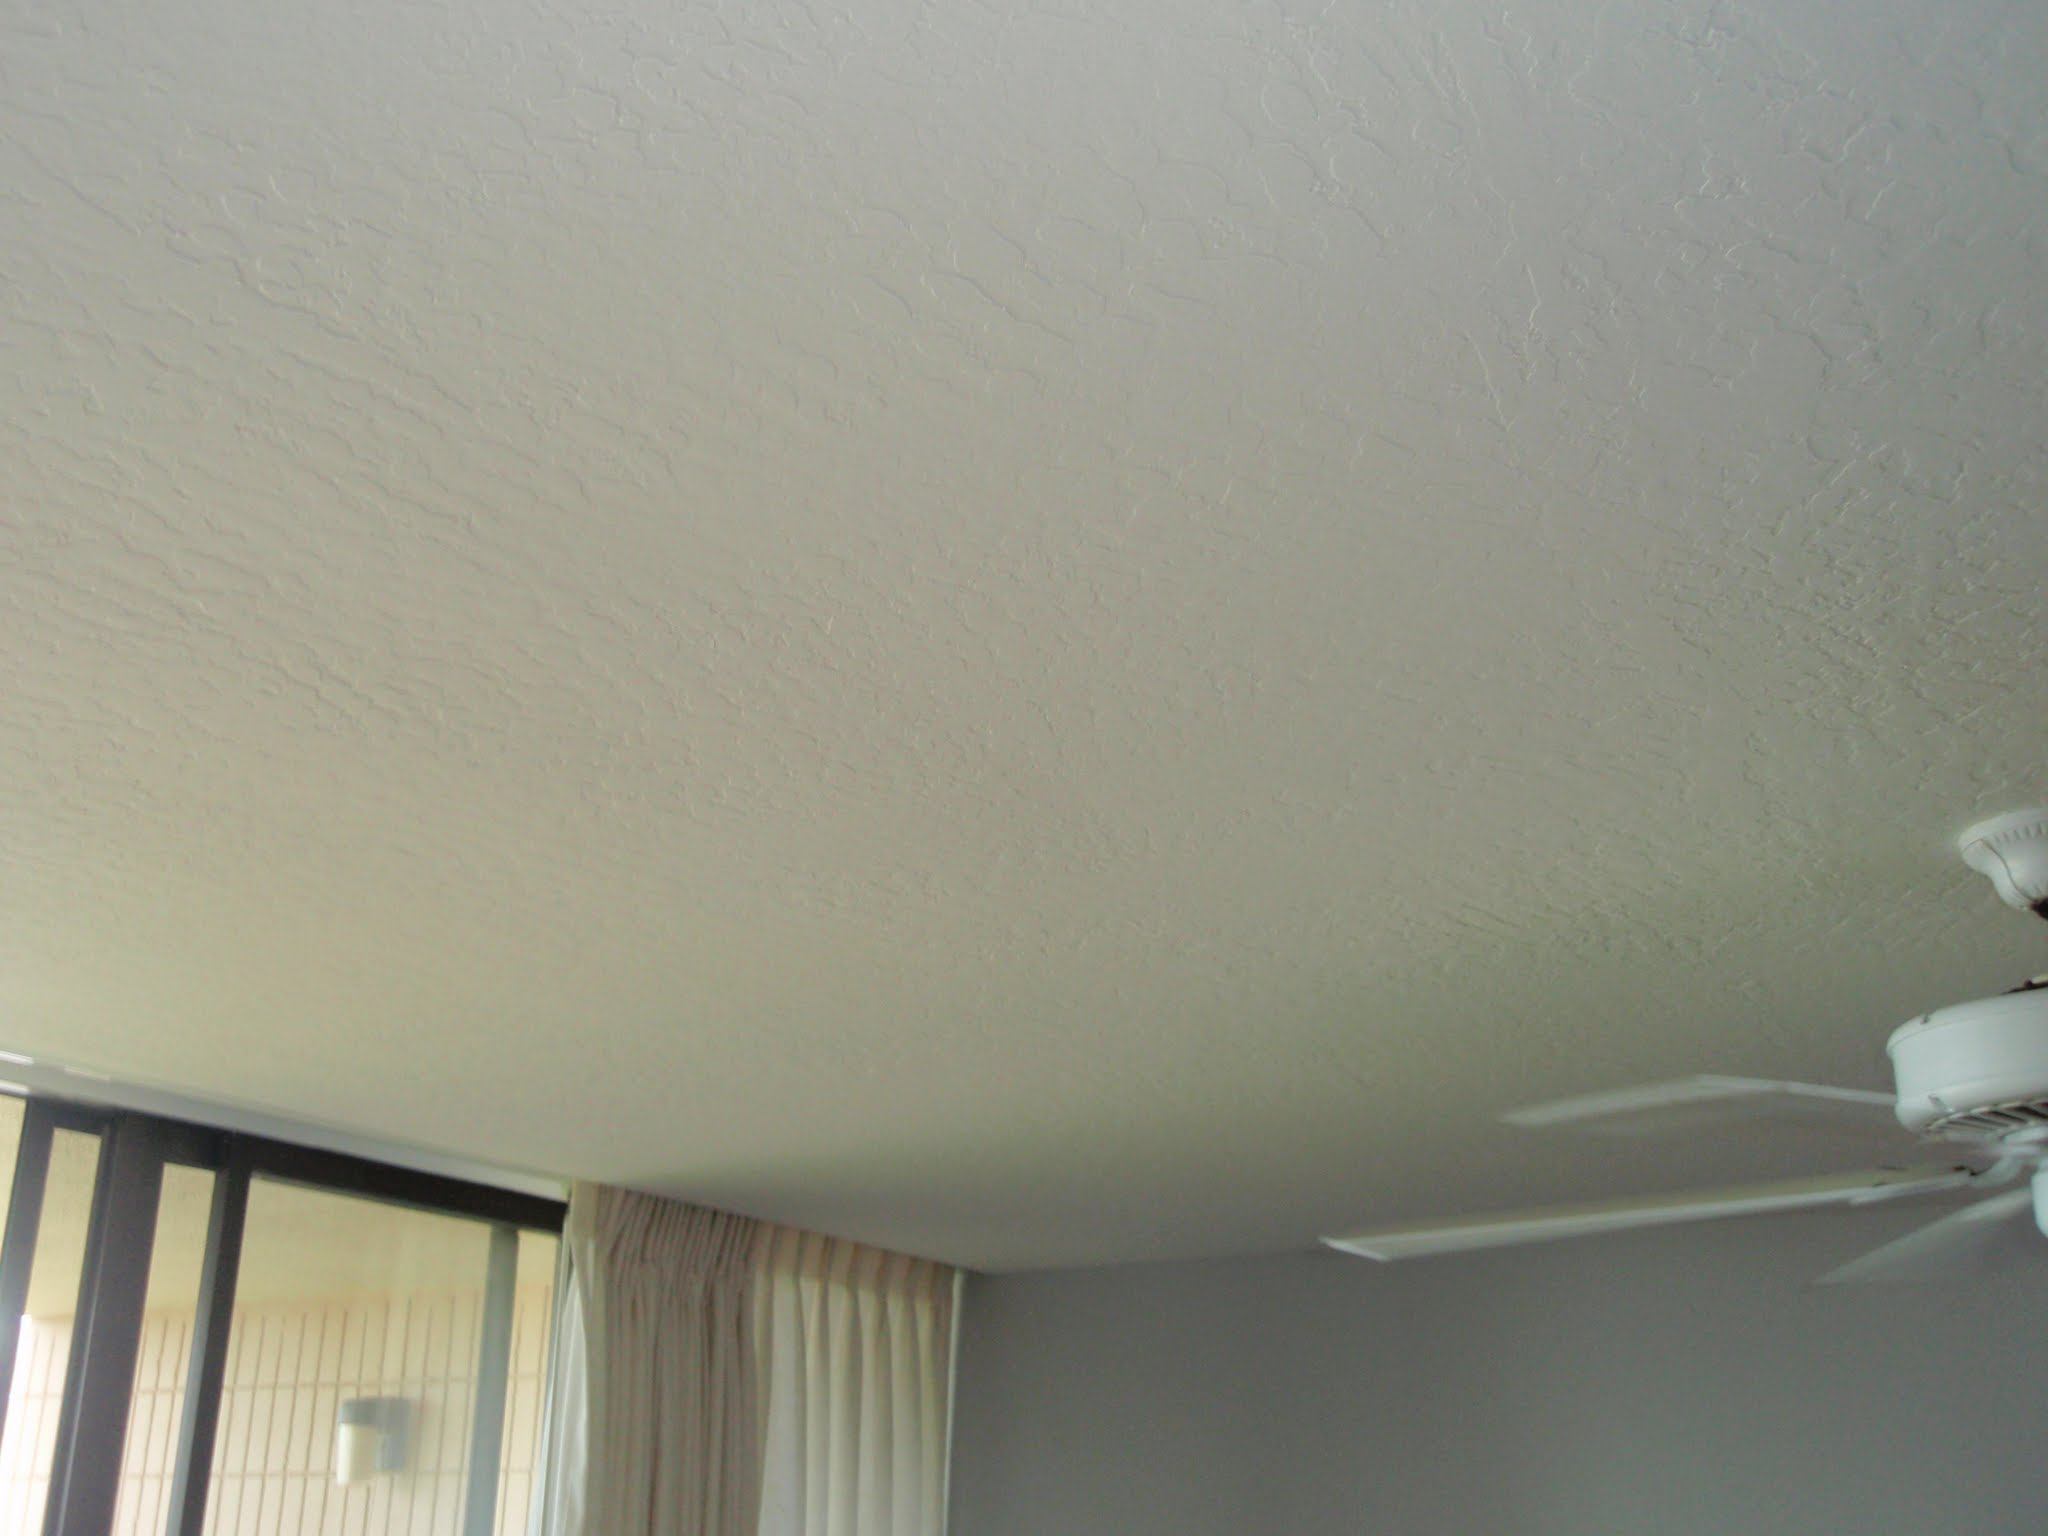 Completely resurfaced ceiling.